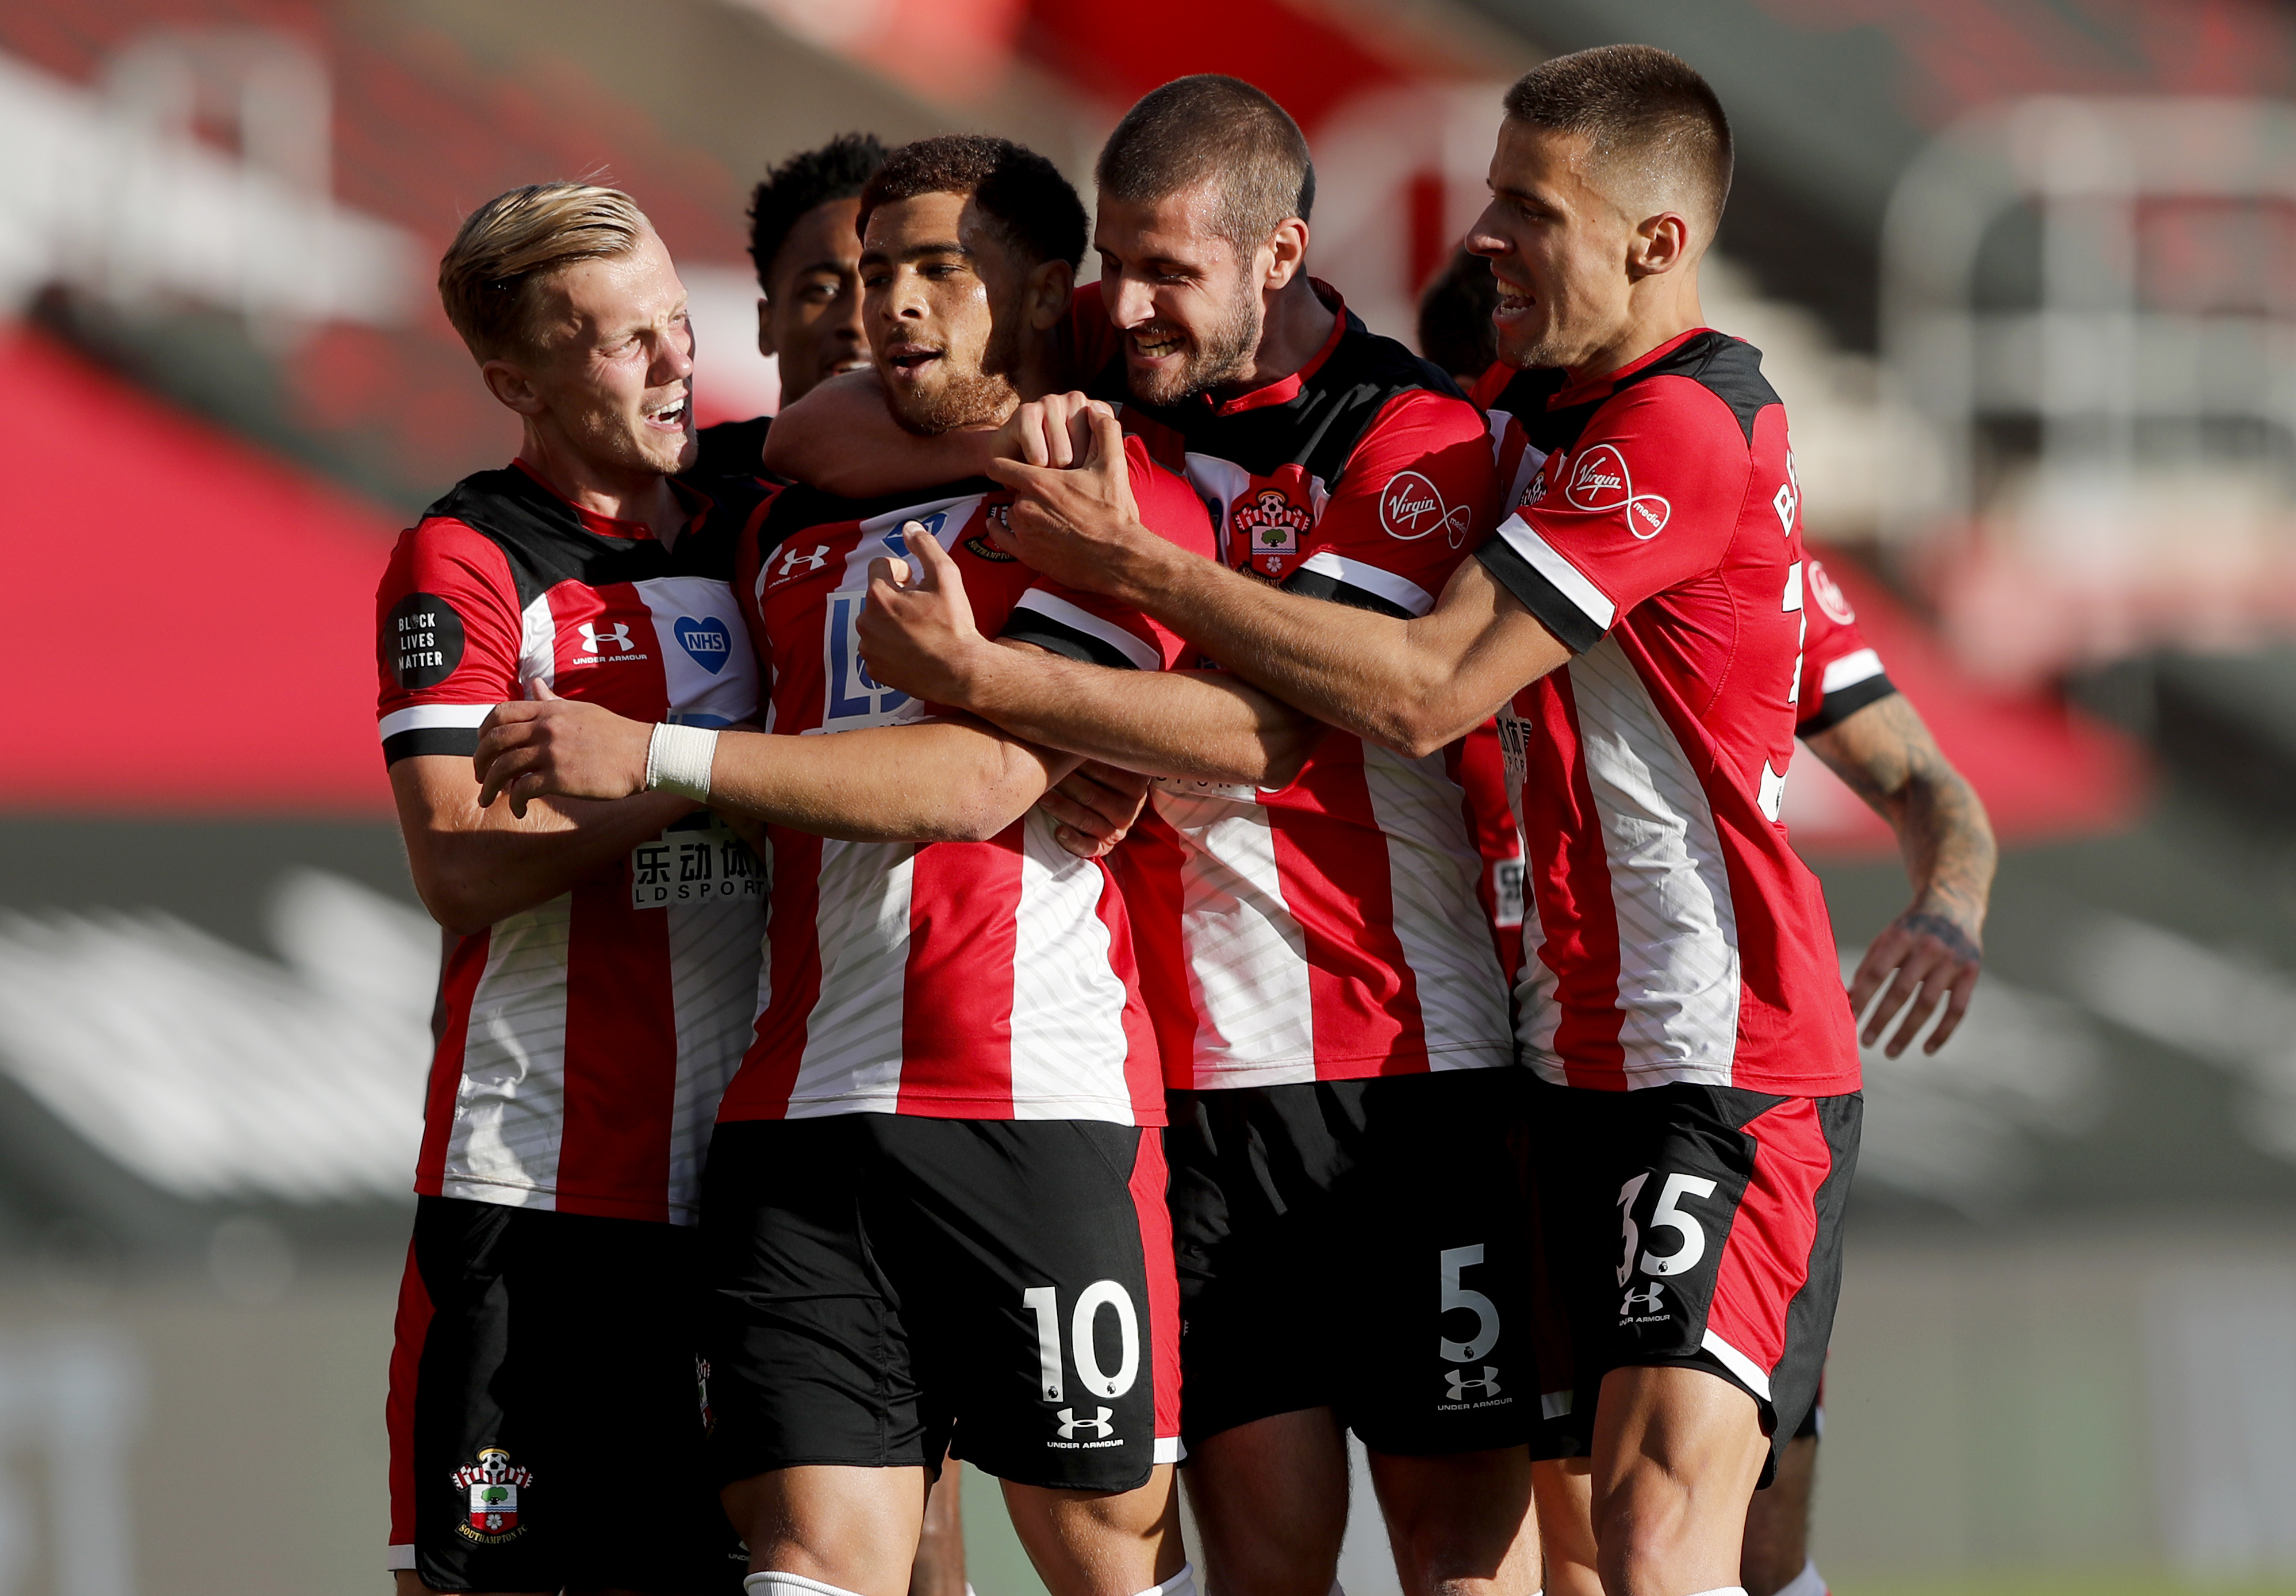 Southampton's Che Adams, second left, is congratulated by teammates after scoring his team's first goal during the English Premier League soccer match between Southampton and Manchester City at St. Mary's Stadium in Southampton, England, Sunday, July 5, 2020. (AP Photo/Frank Augstein,Pool)